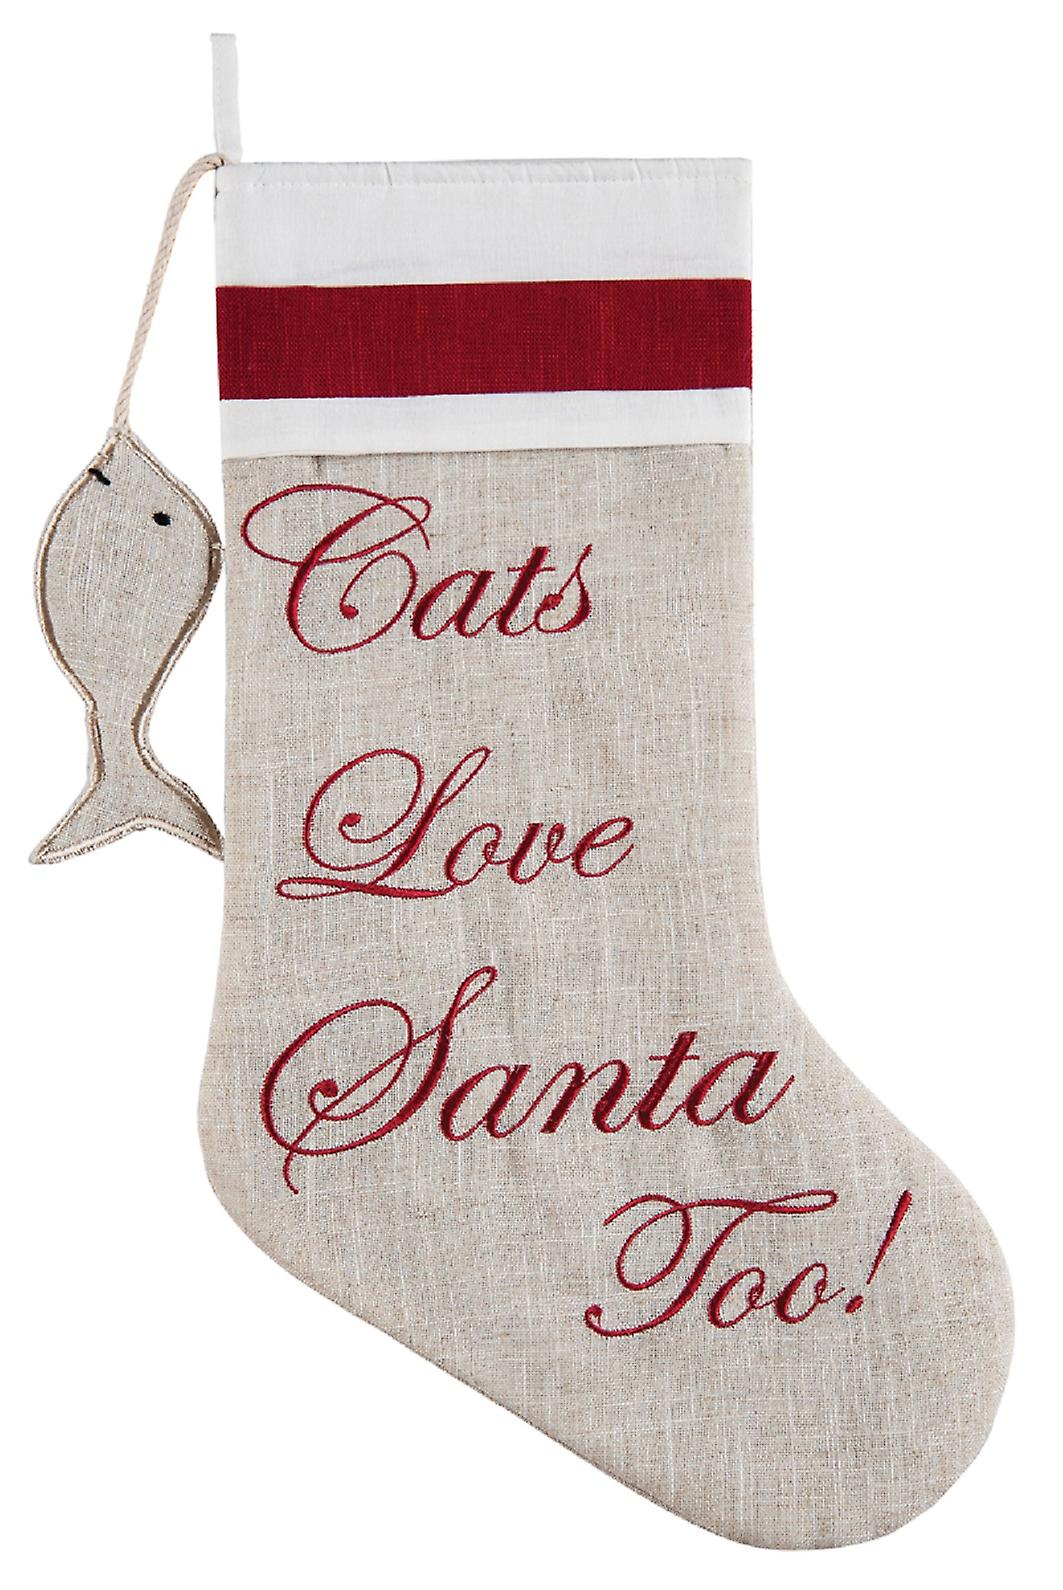 Cats Love Santa Too Embroidered Linen Look 20 Inch Christmas Holiday Stocking